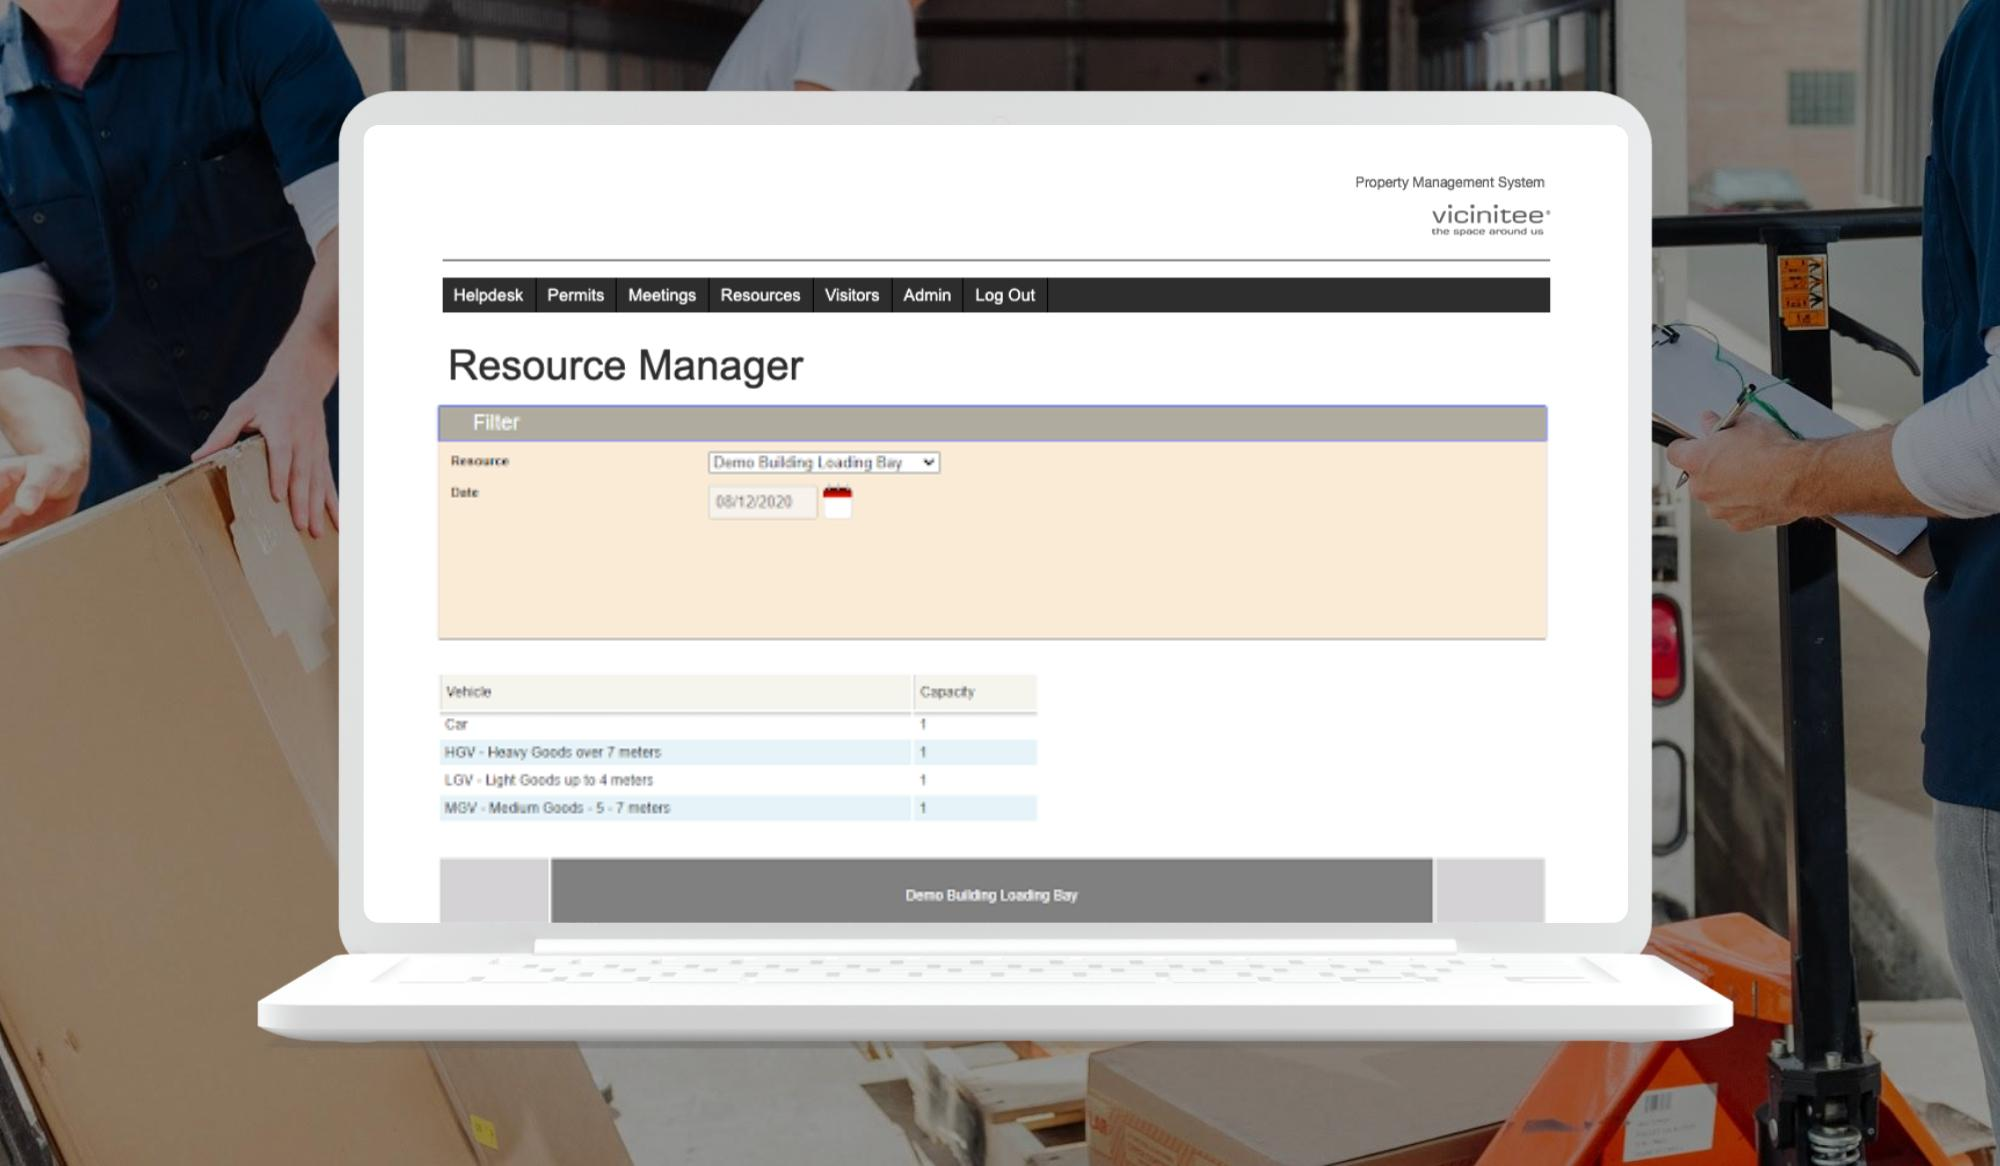 Commercialisation System for Facilities Managers   Vicinitee Property Management Software